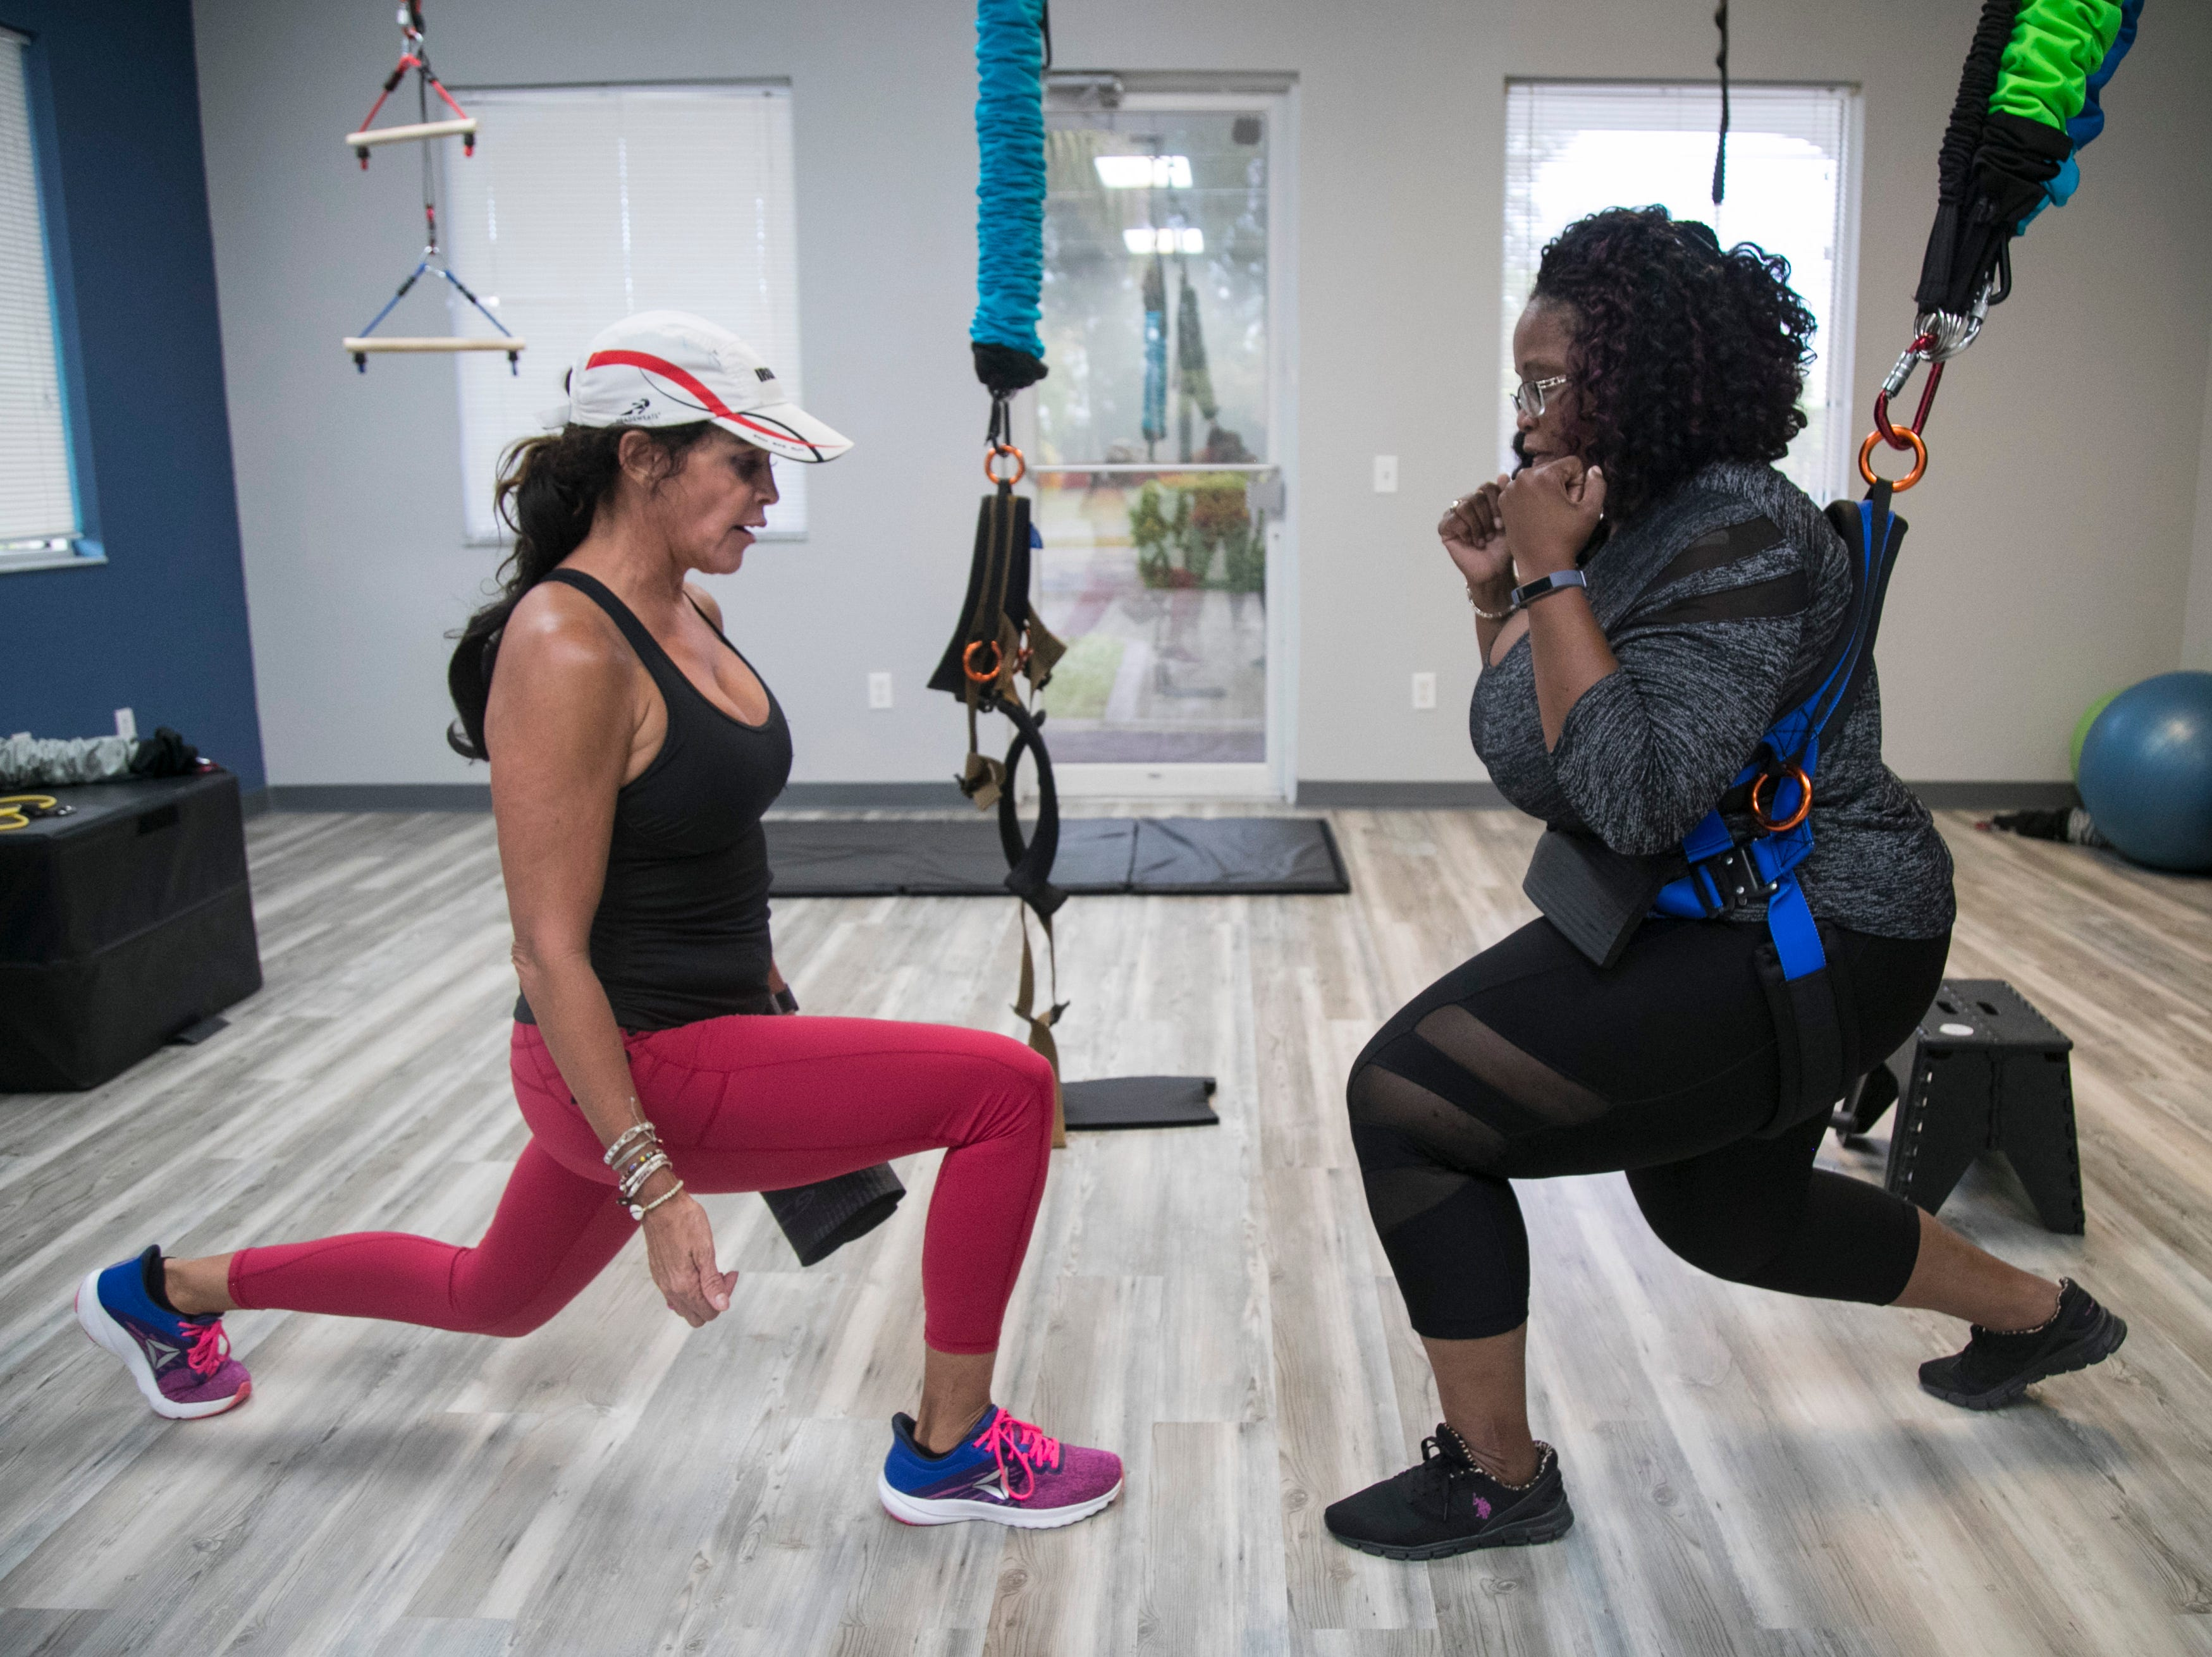 Sabrina Kempa, left, coaches Vanessa Vance on the proper technique for lunges on the Astro-Durance bungee at P2 Personal Training in Cape Coral on Wednesday.